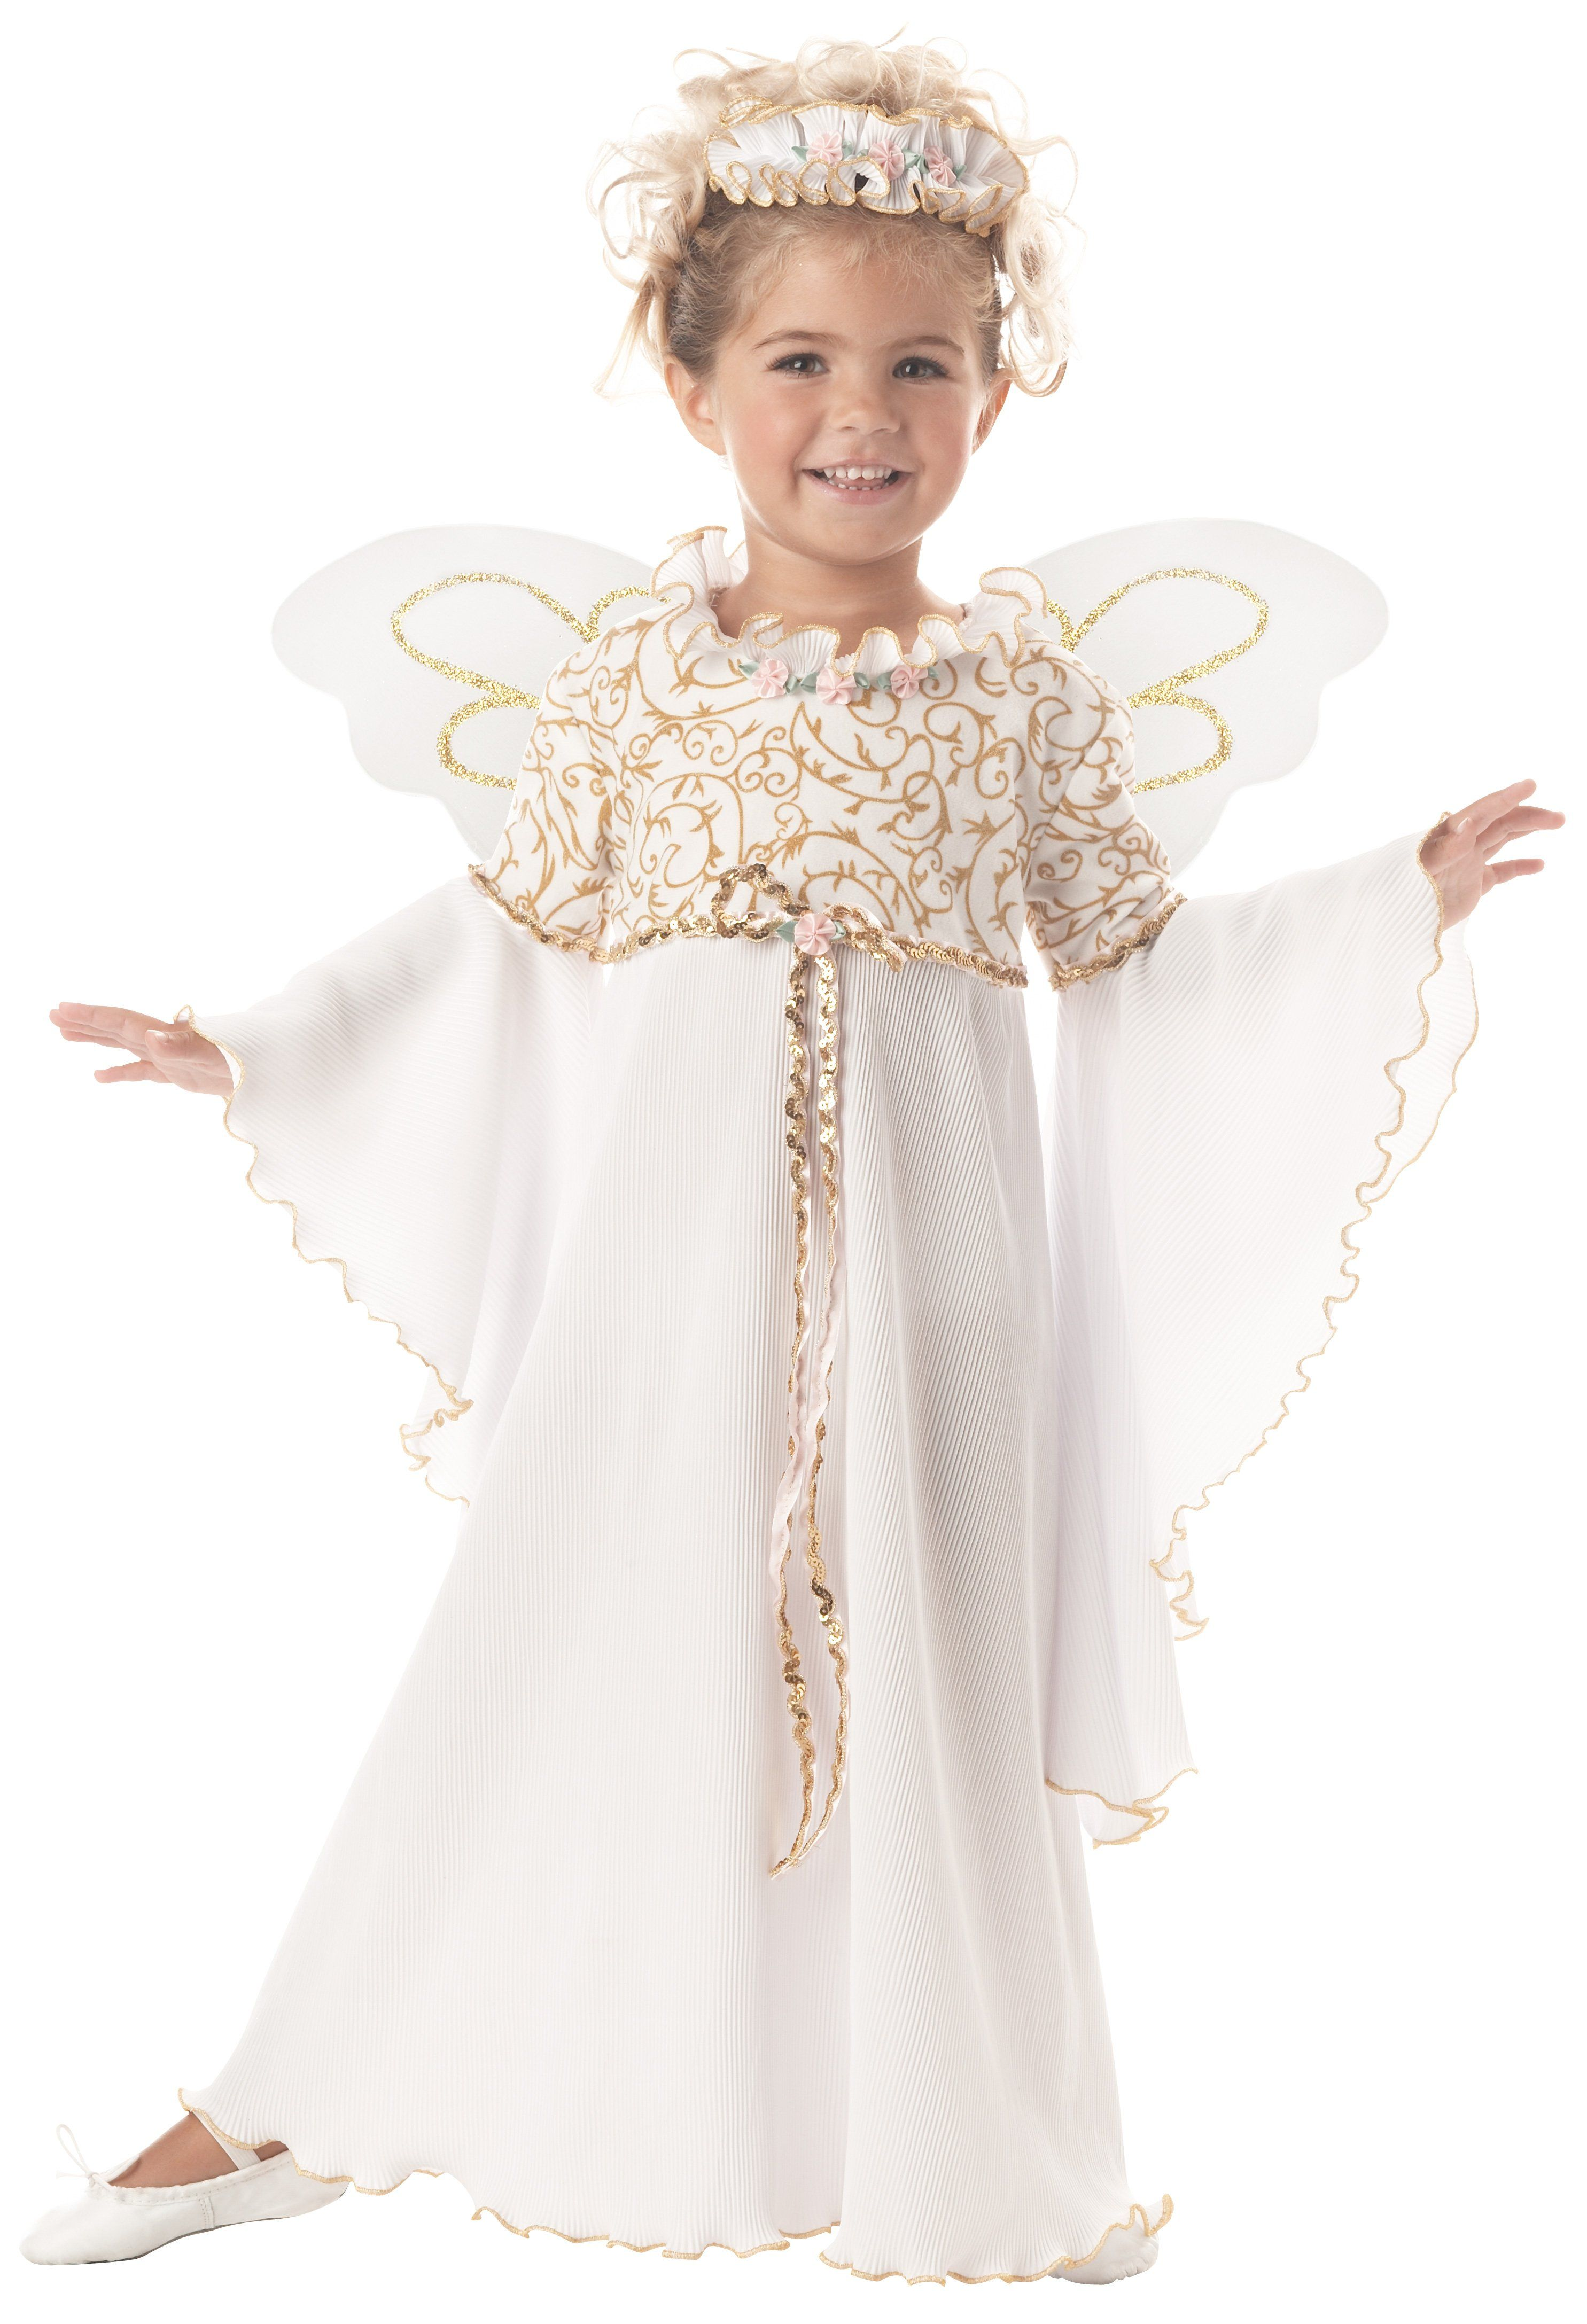 Guardian Angel Child Costume | Toddler costumes, Children costumes ...